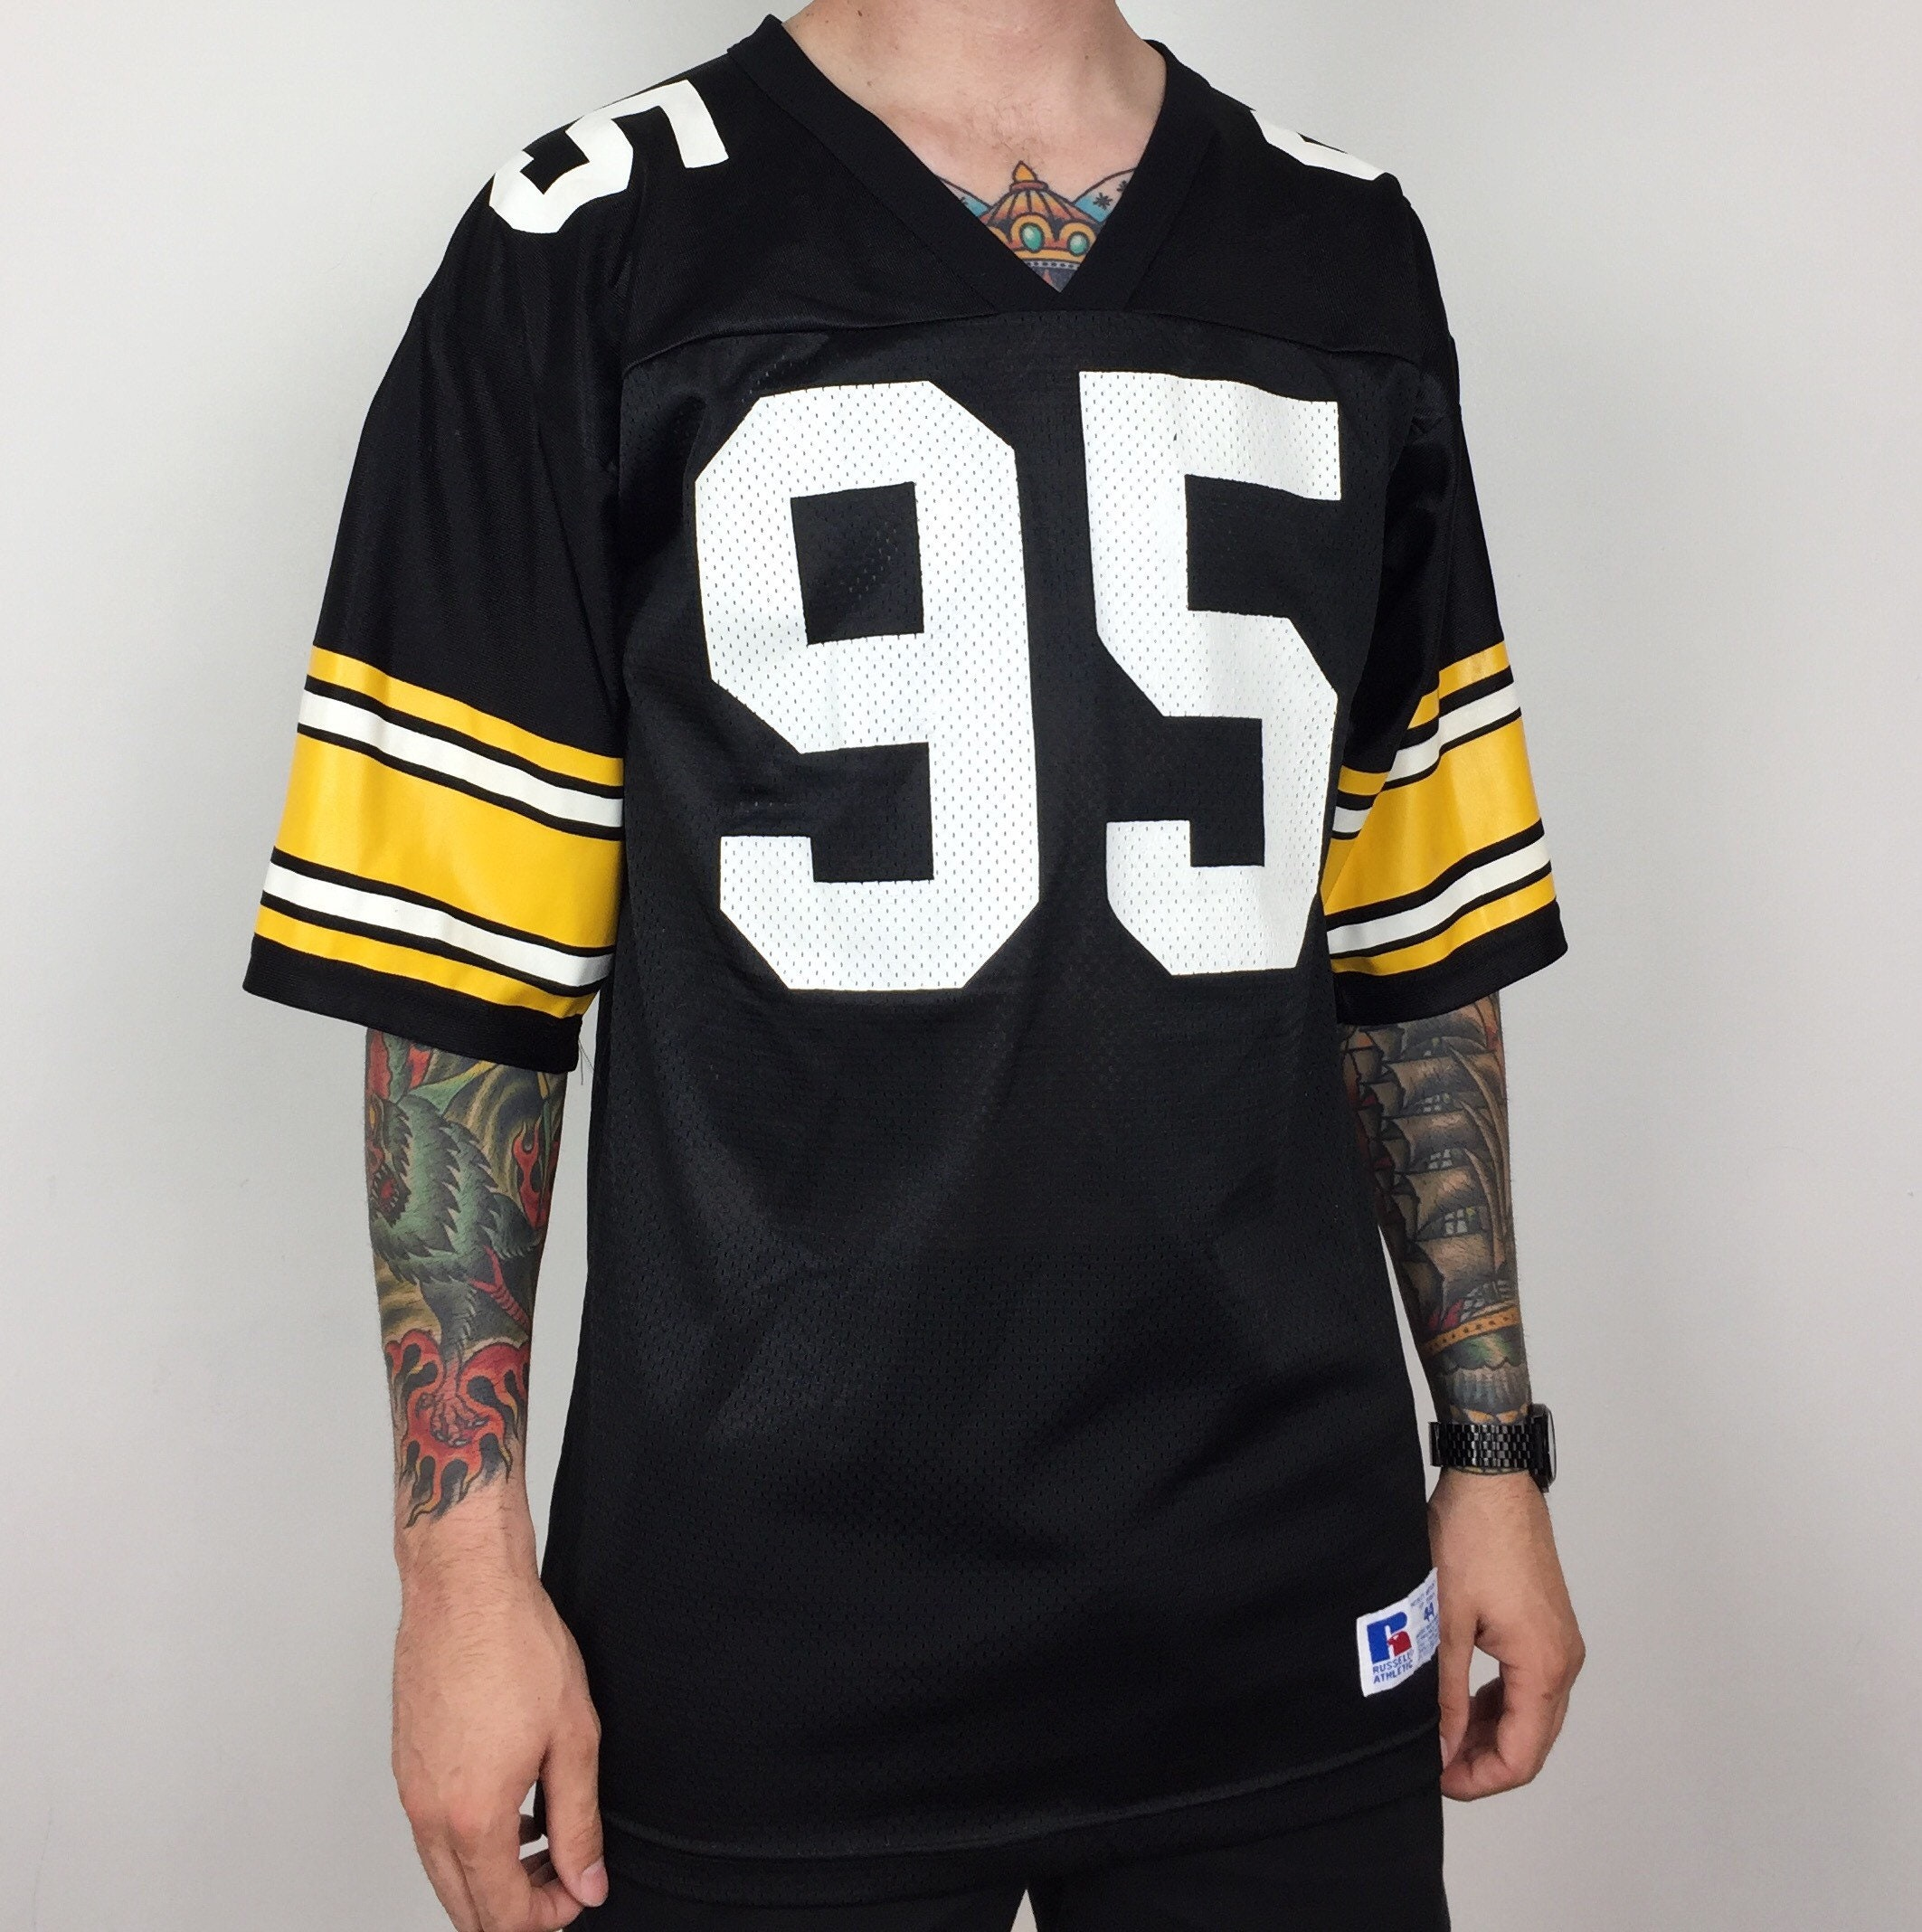 06456c676 ... rare vintage 90s russell athletic nfl pittsburgh steelers greg lloyd sr 95  black yellow football jer